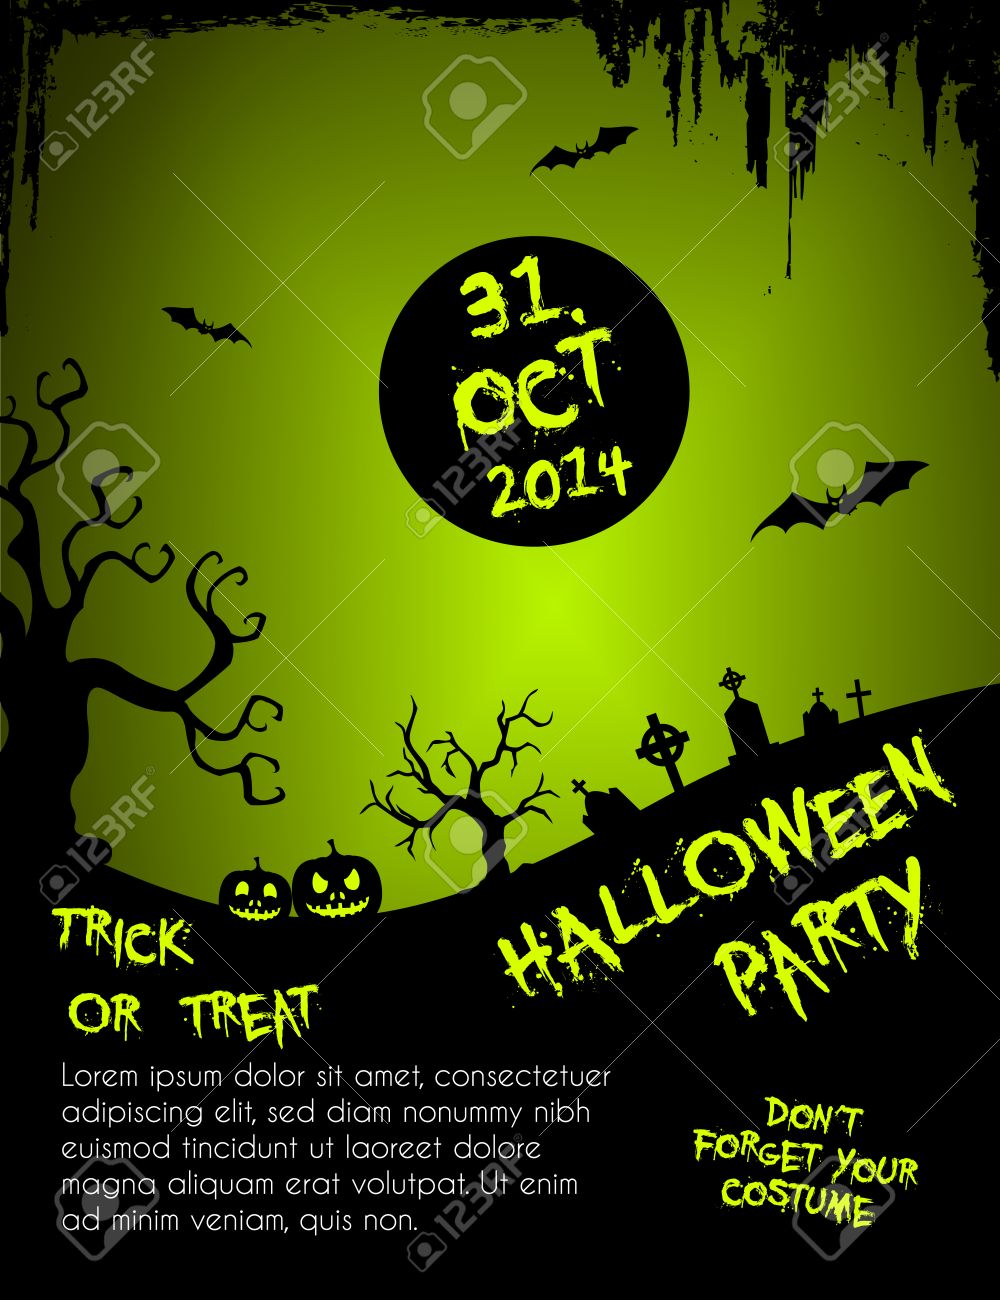 Halloween Party Flyer Template Green And Black Royalty Free - Halloween Party  Flyer Template